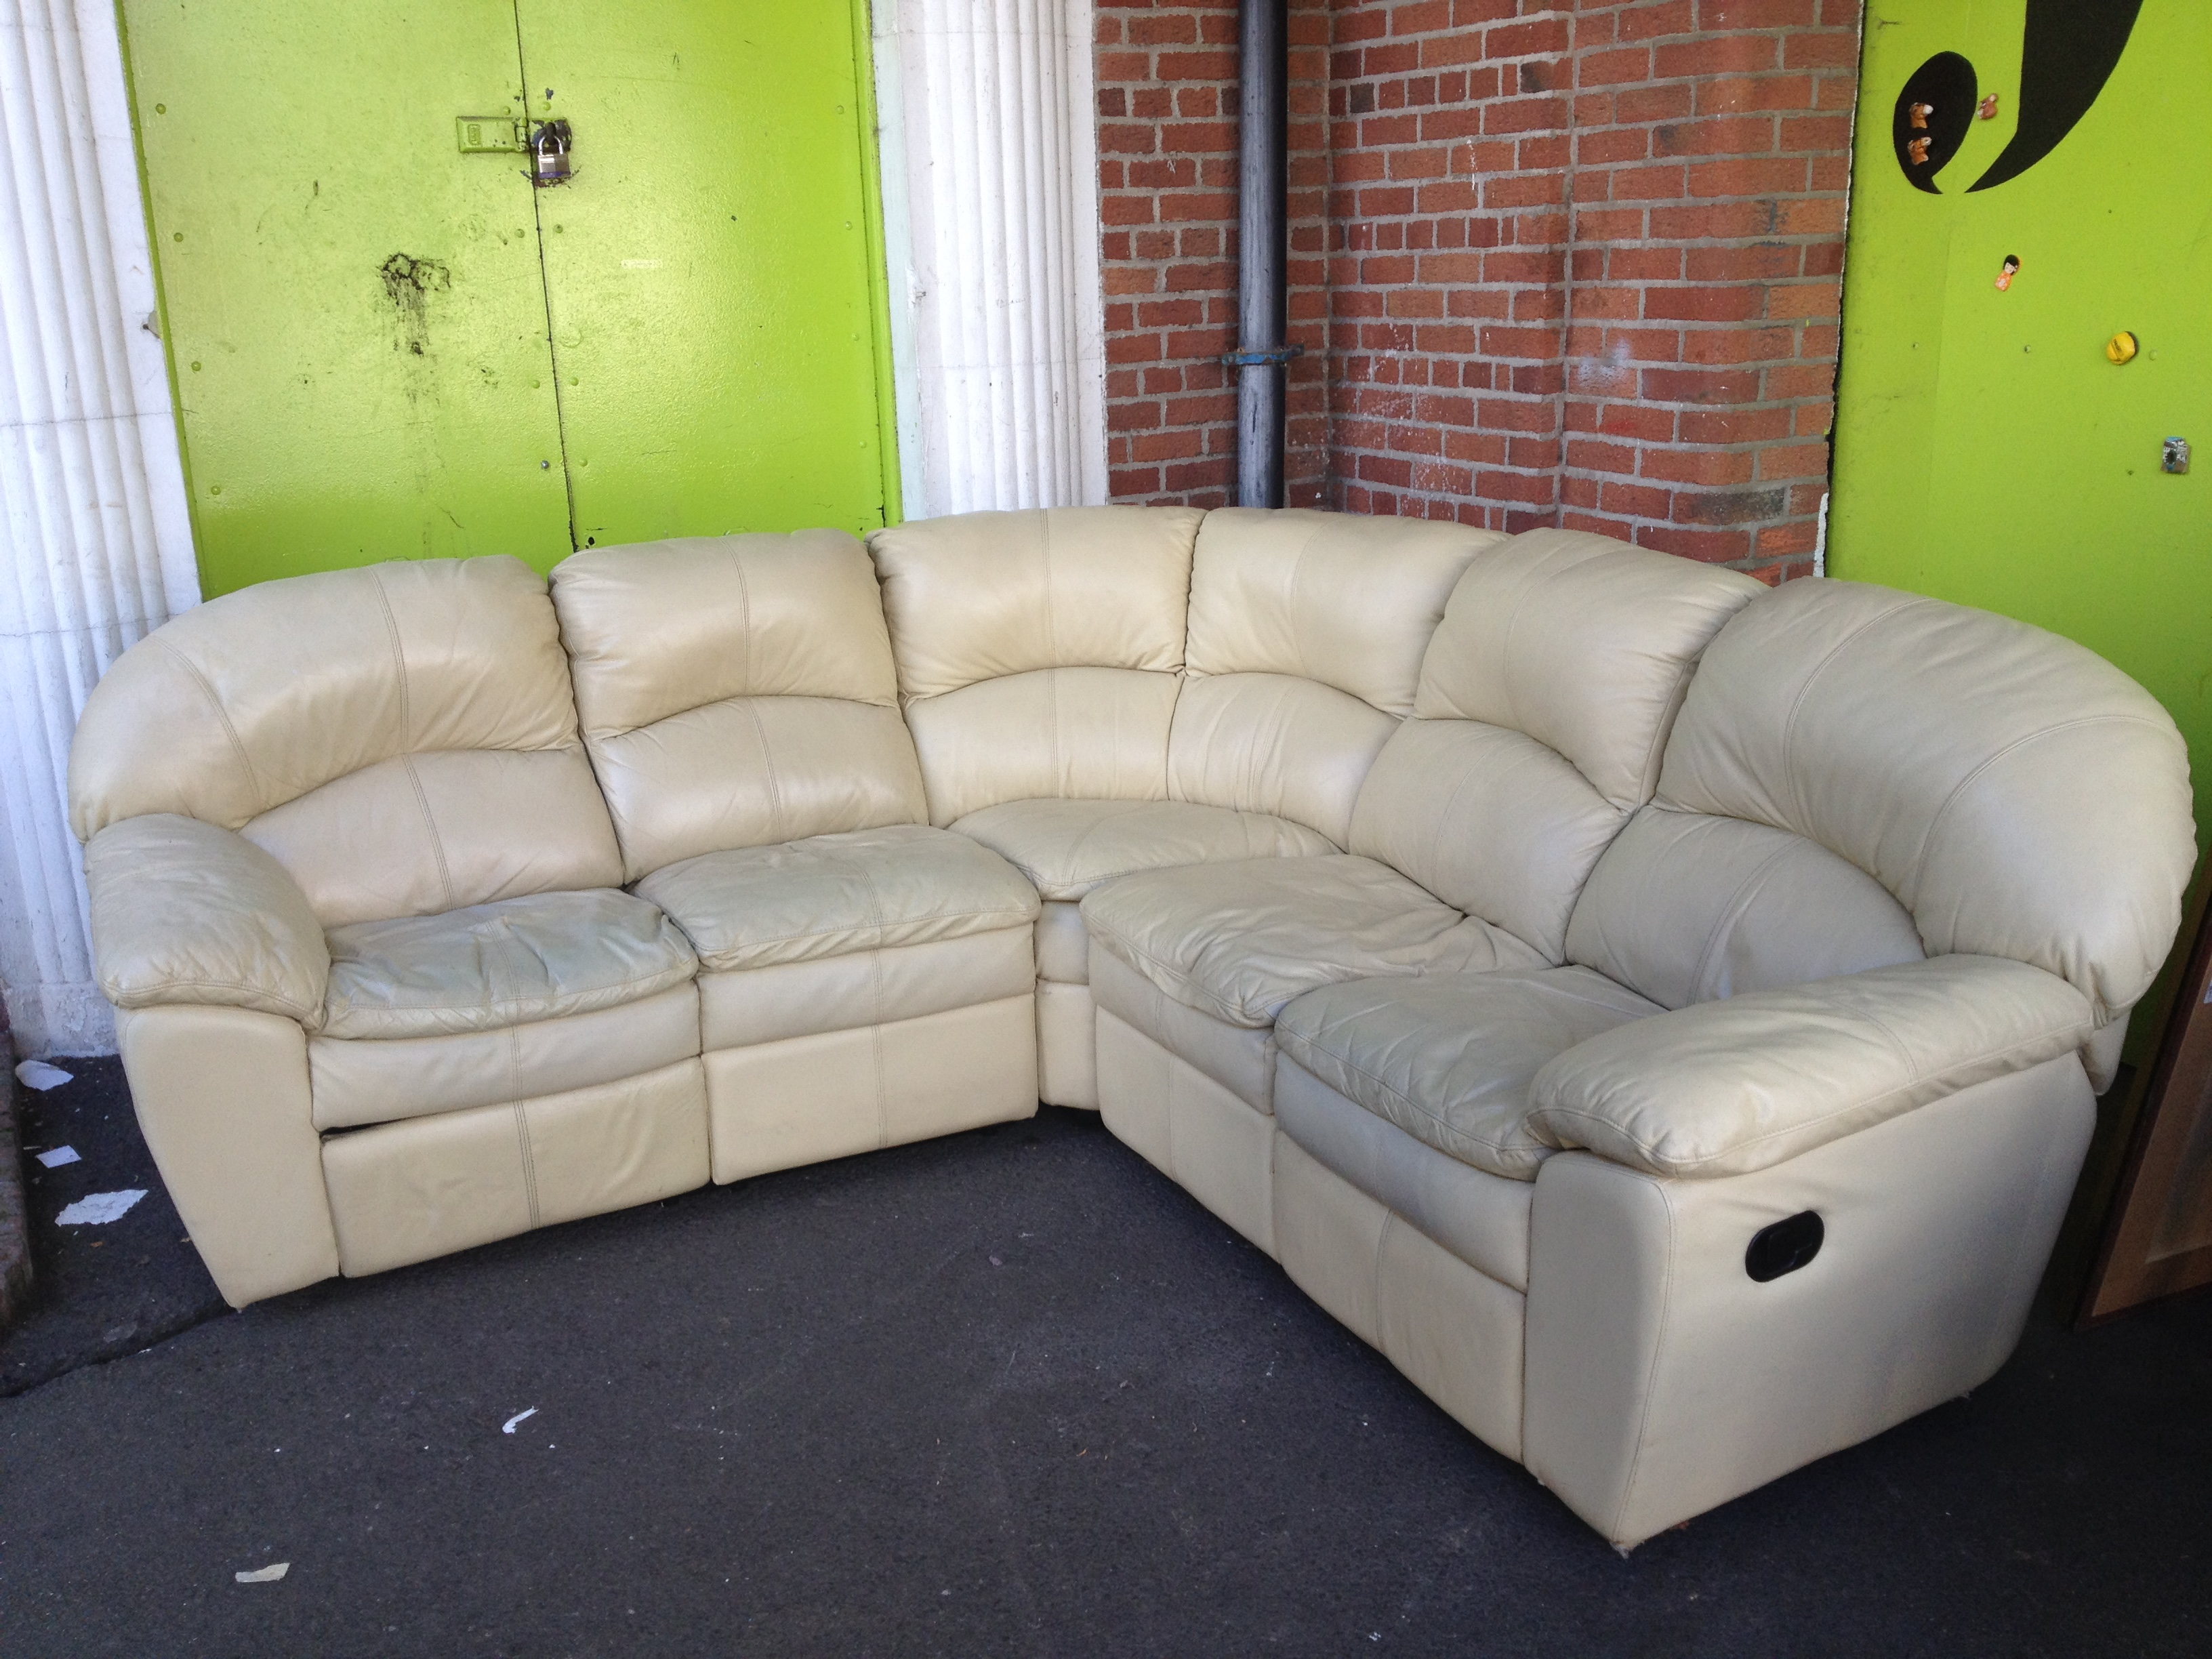 2nd hand sofas for sale buy cheap sofas and couches in for Affordable couches for sale